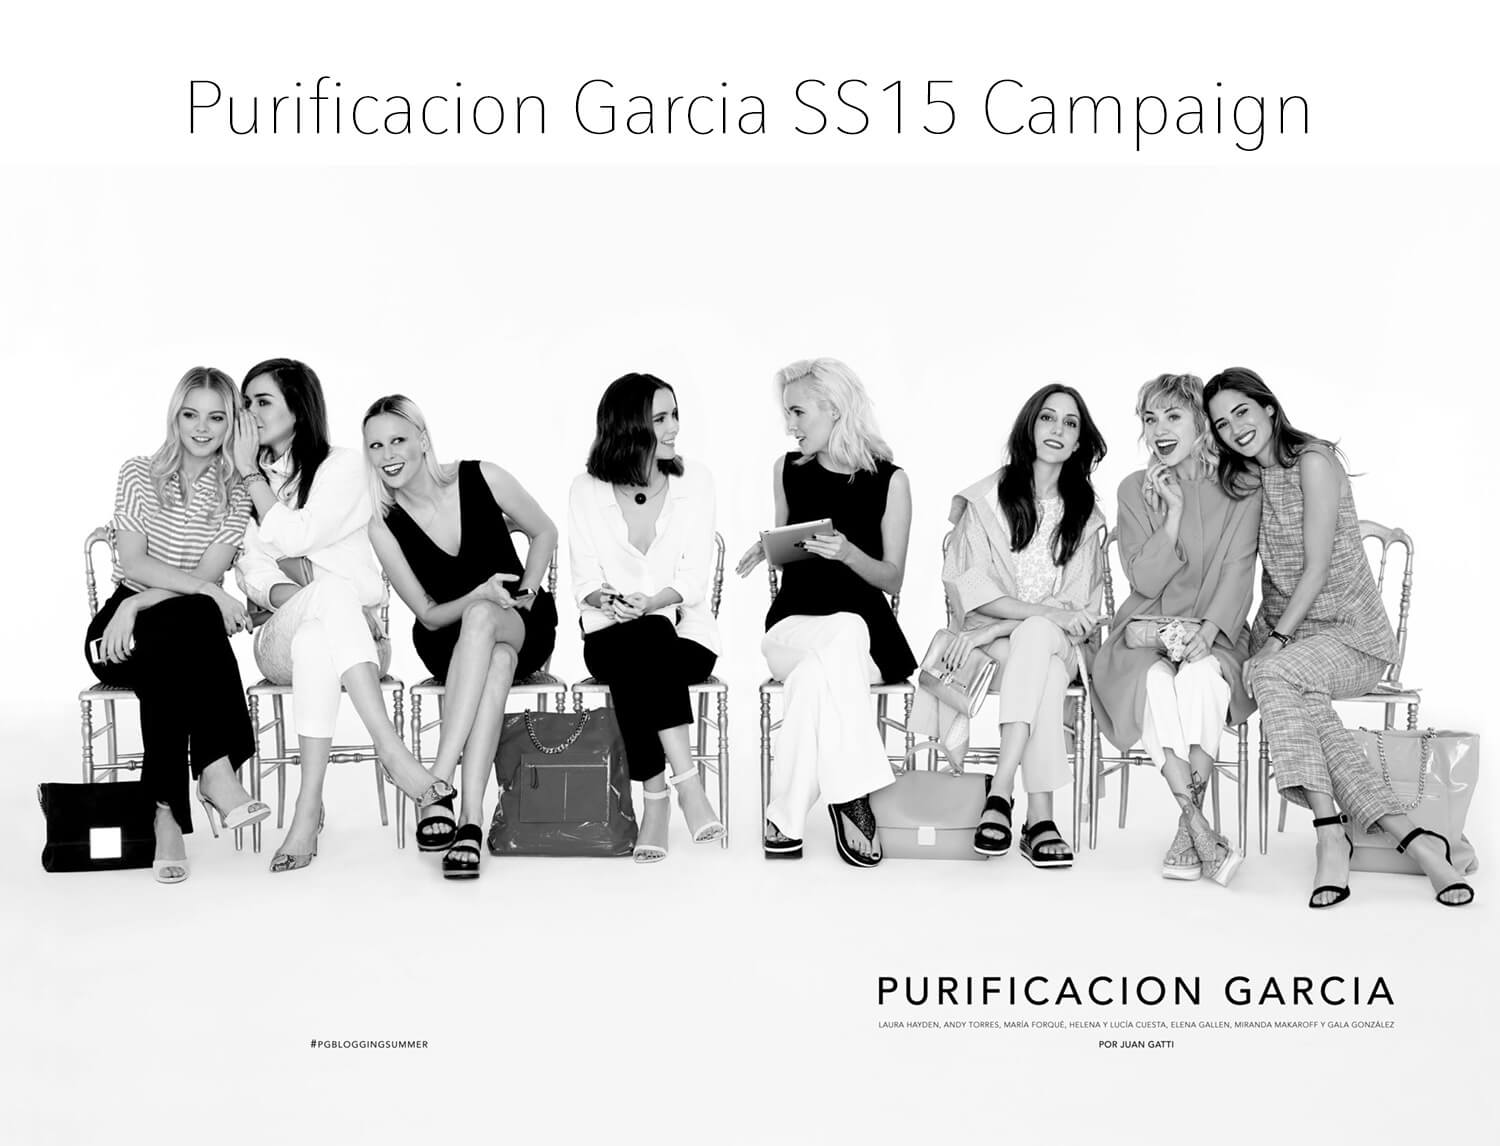 andy torres as part of the Purificacion Garcia spring summer 2015 campaign